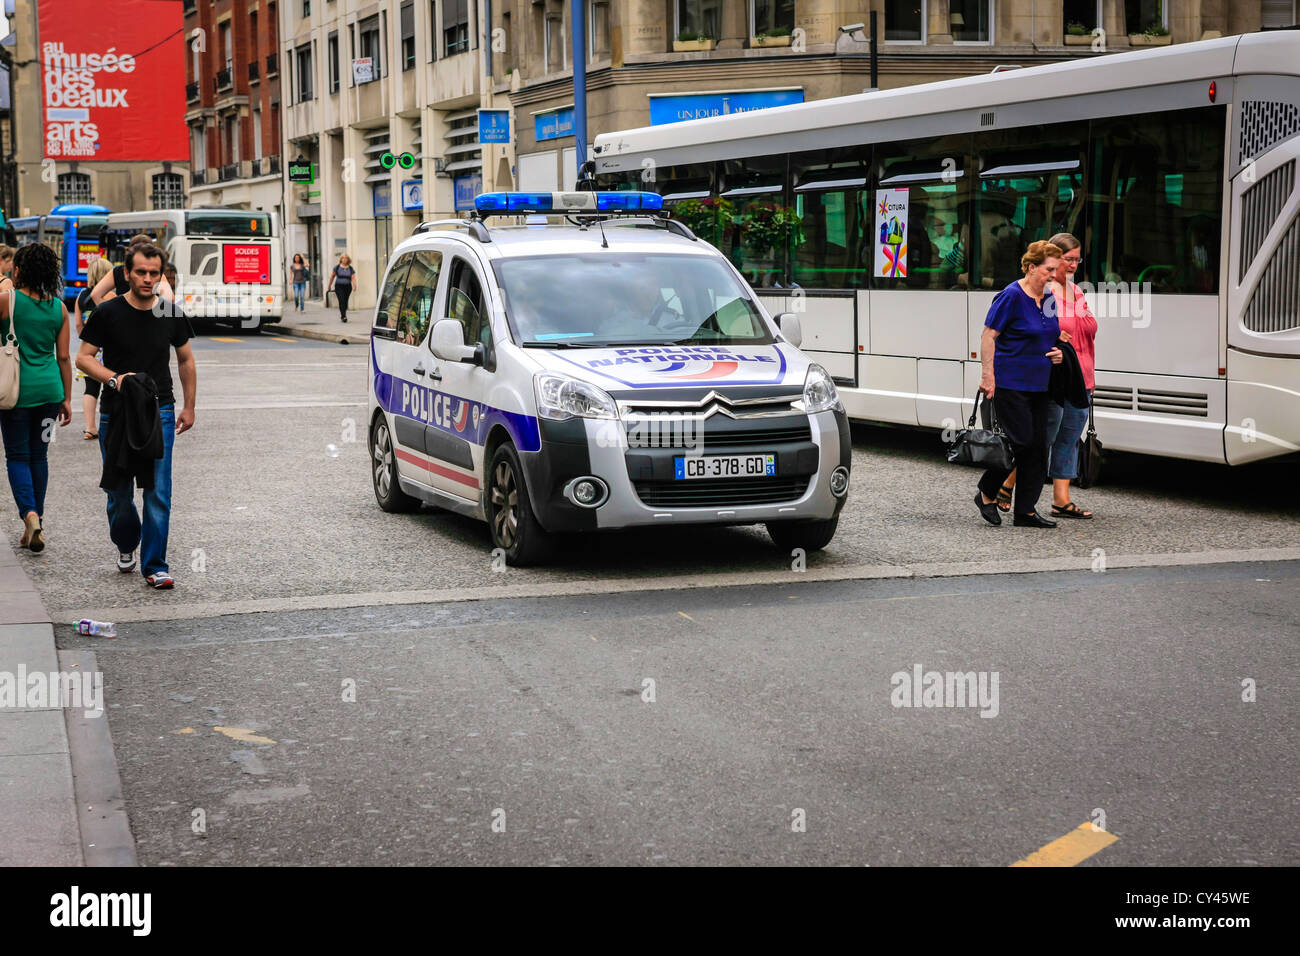 french police car photos french police car images alamy. Black Bedroom Furniture Sets. Home Design Ideas